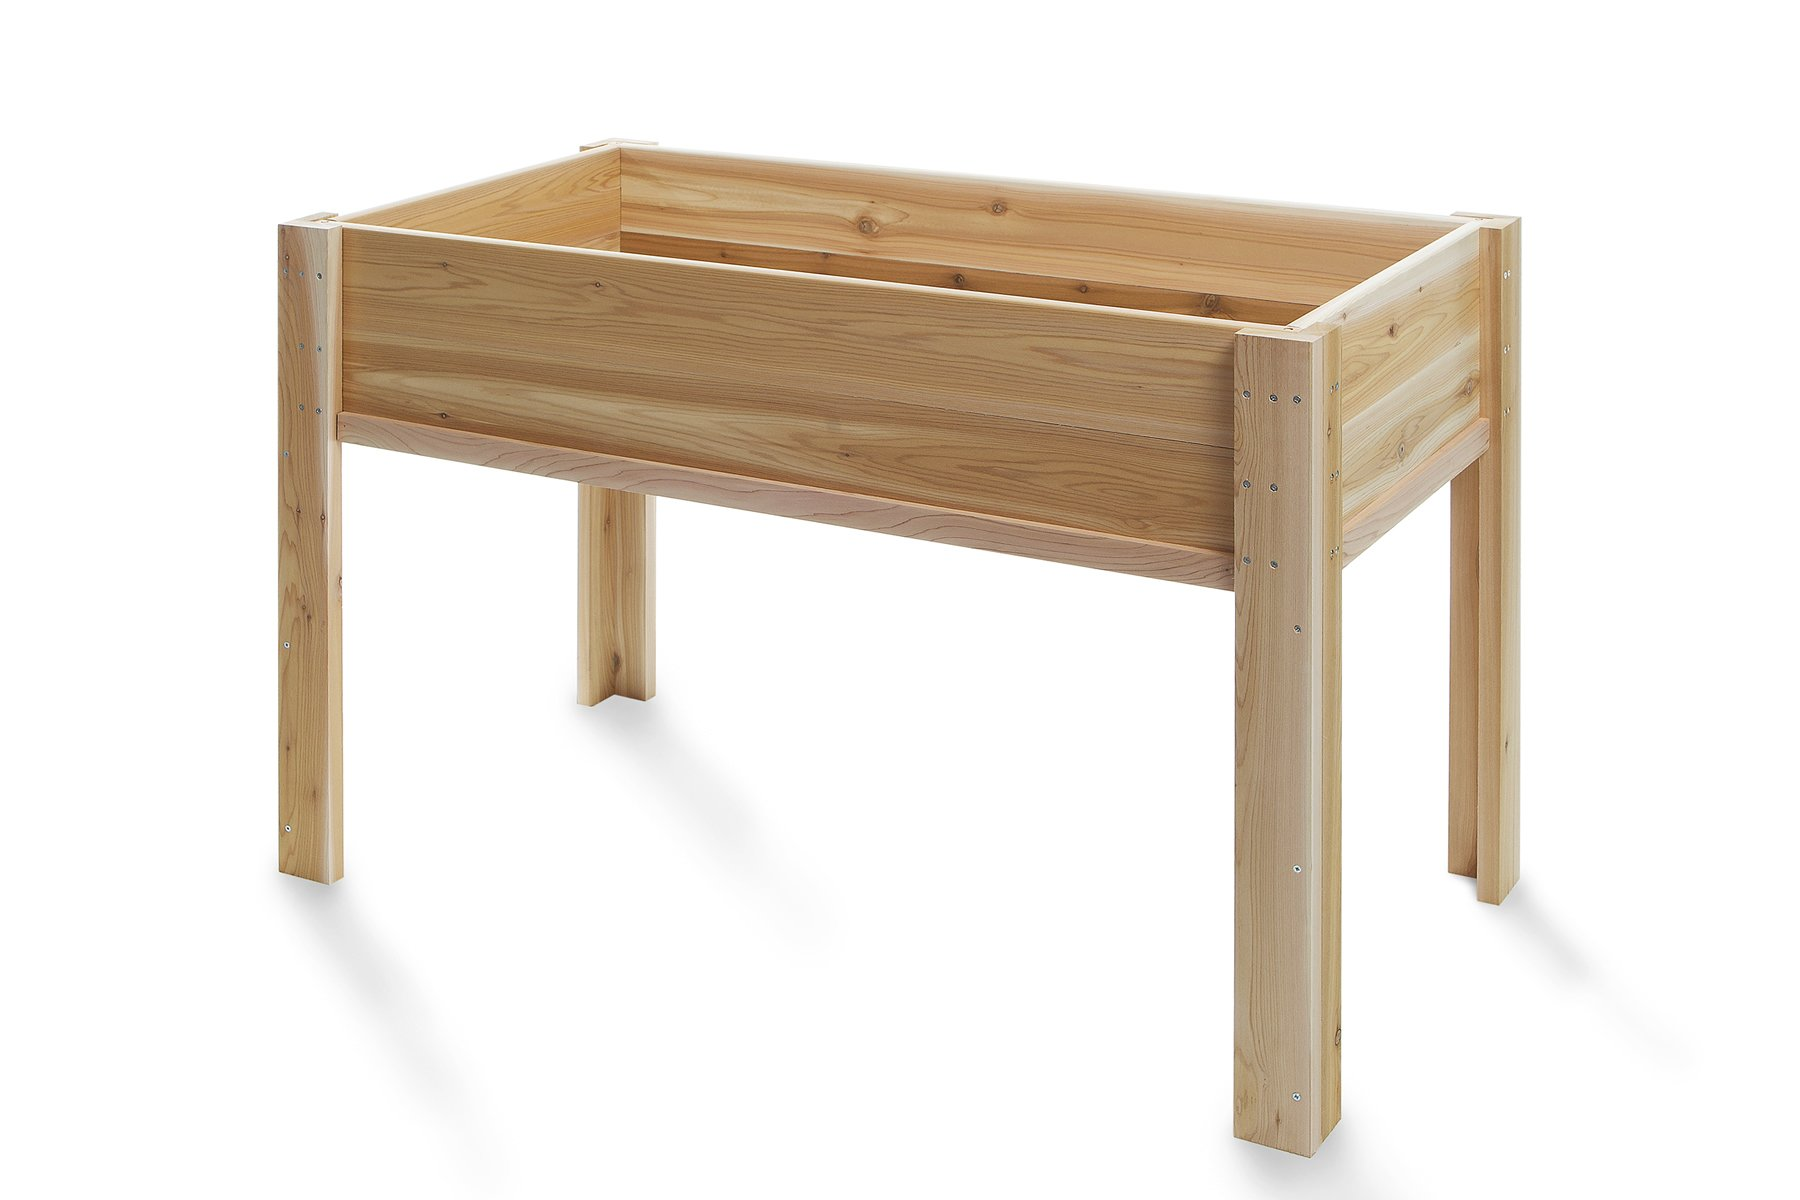 All Things Cedar Raised Garden Box with Legs, 4' by All Things Cedar